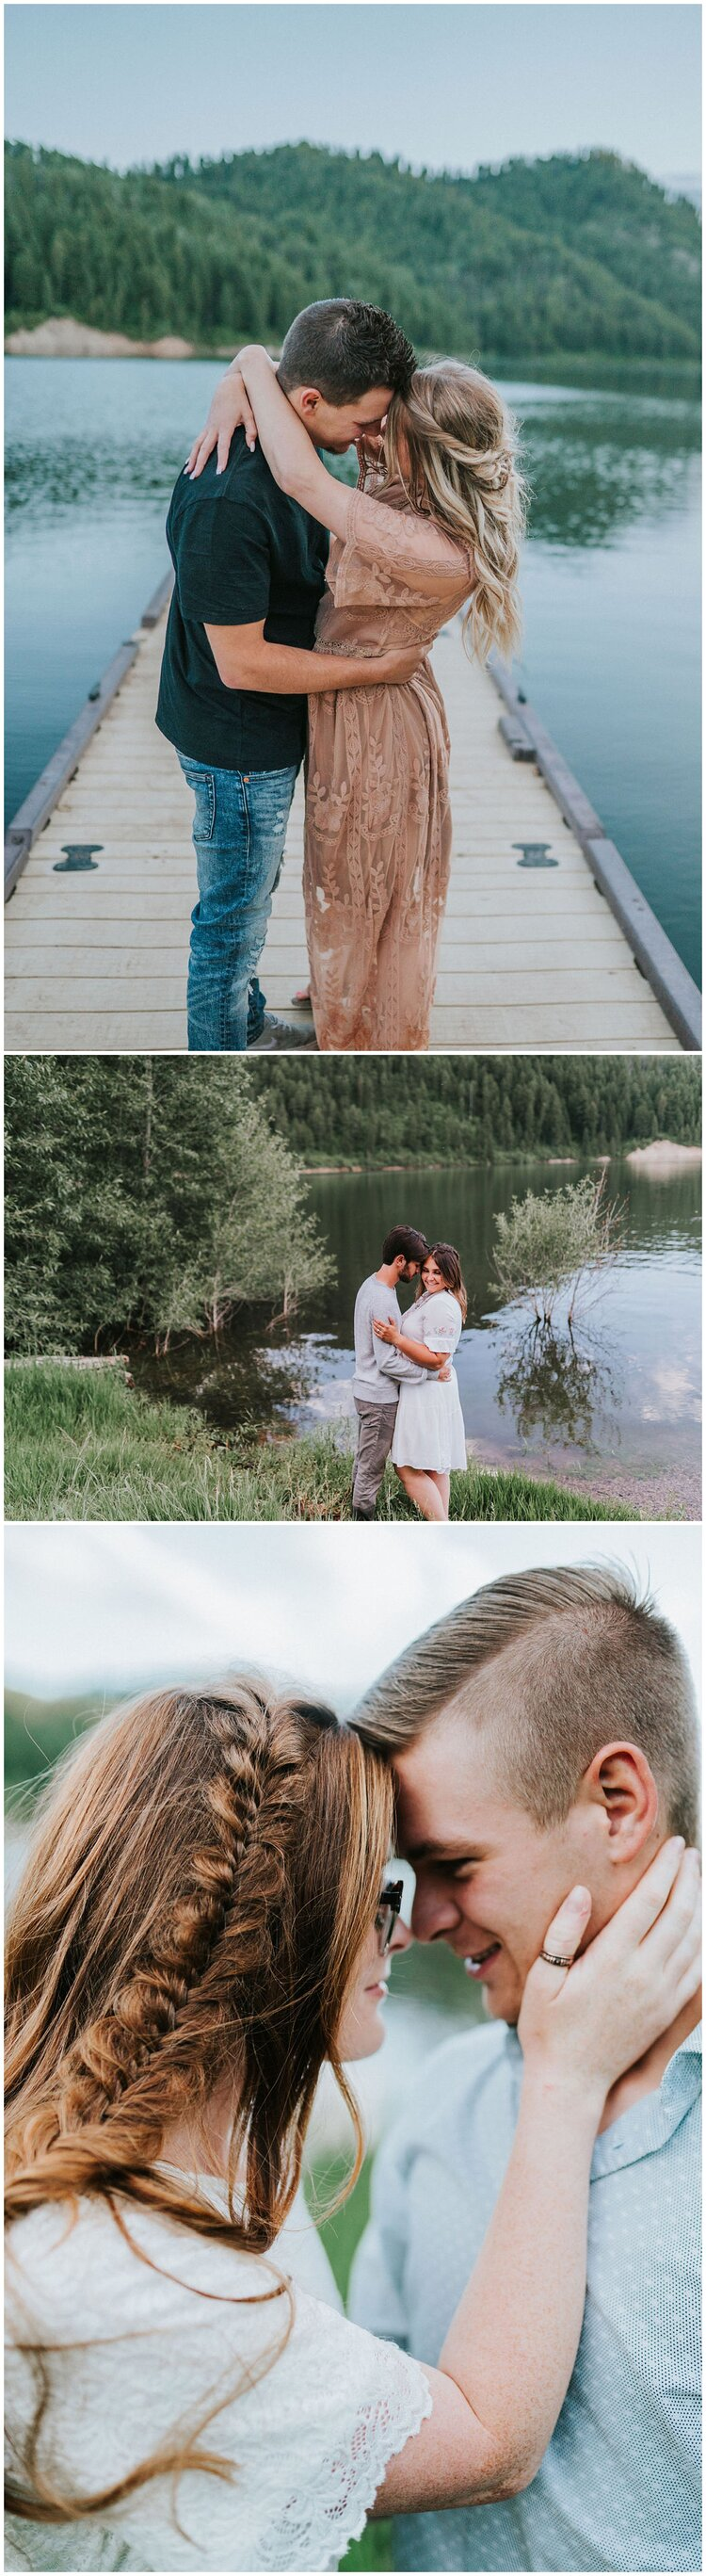 adventure-engagement-session-knoxville-tennessee-wedding-photographer-look-for-the-light-photo-video